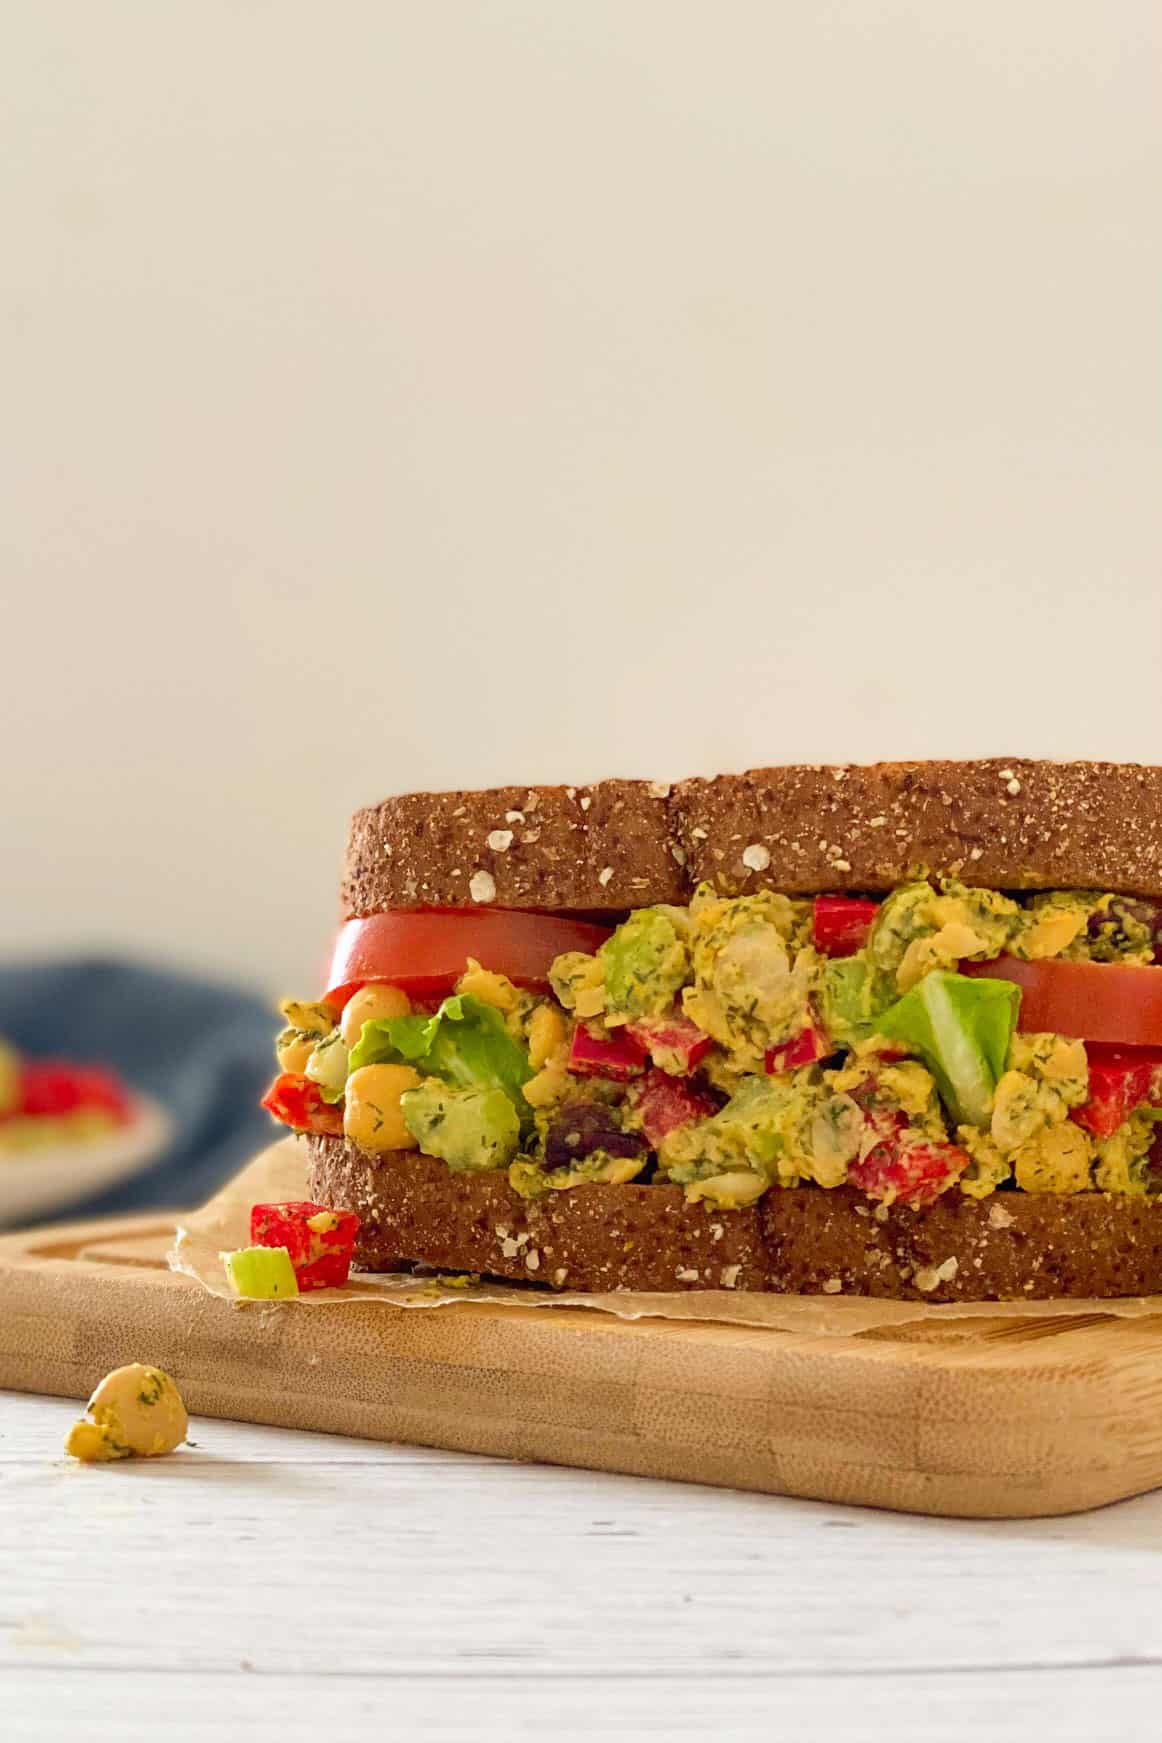 Chickpea salad sandwich on cutting board with chickpeas and pepper falling out.